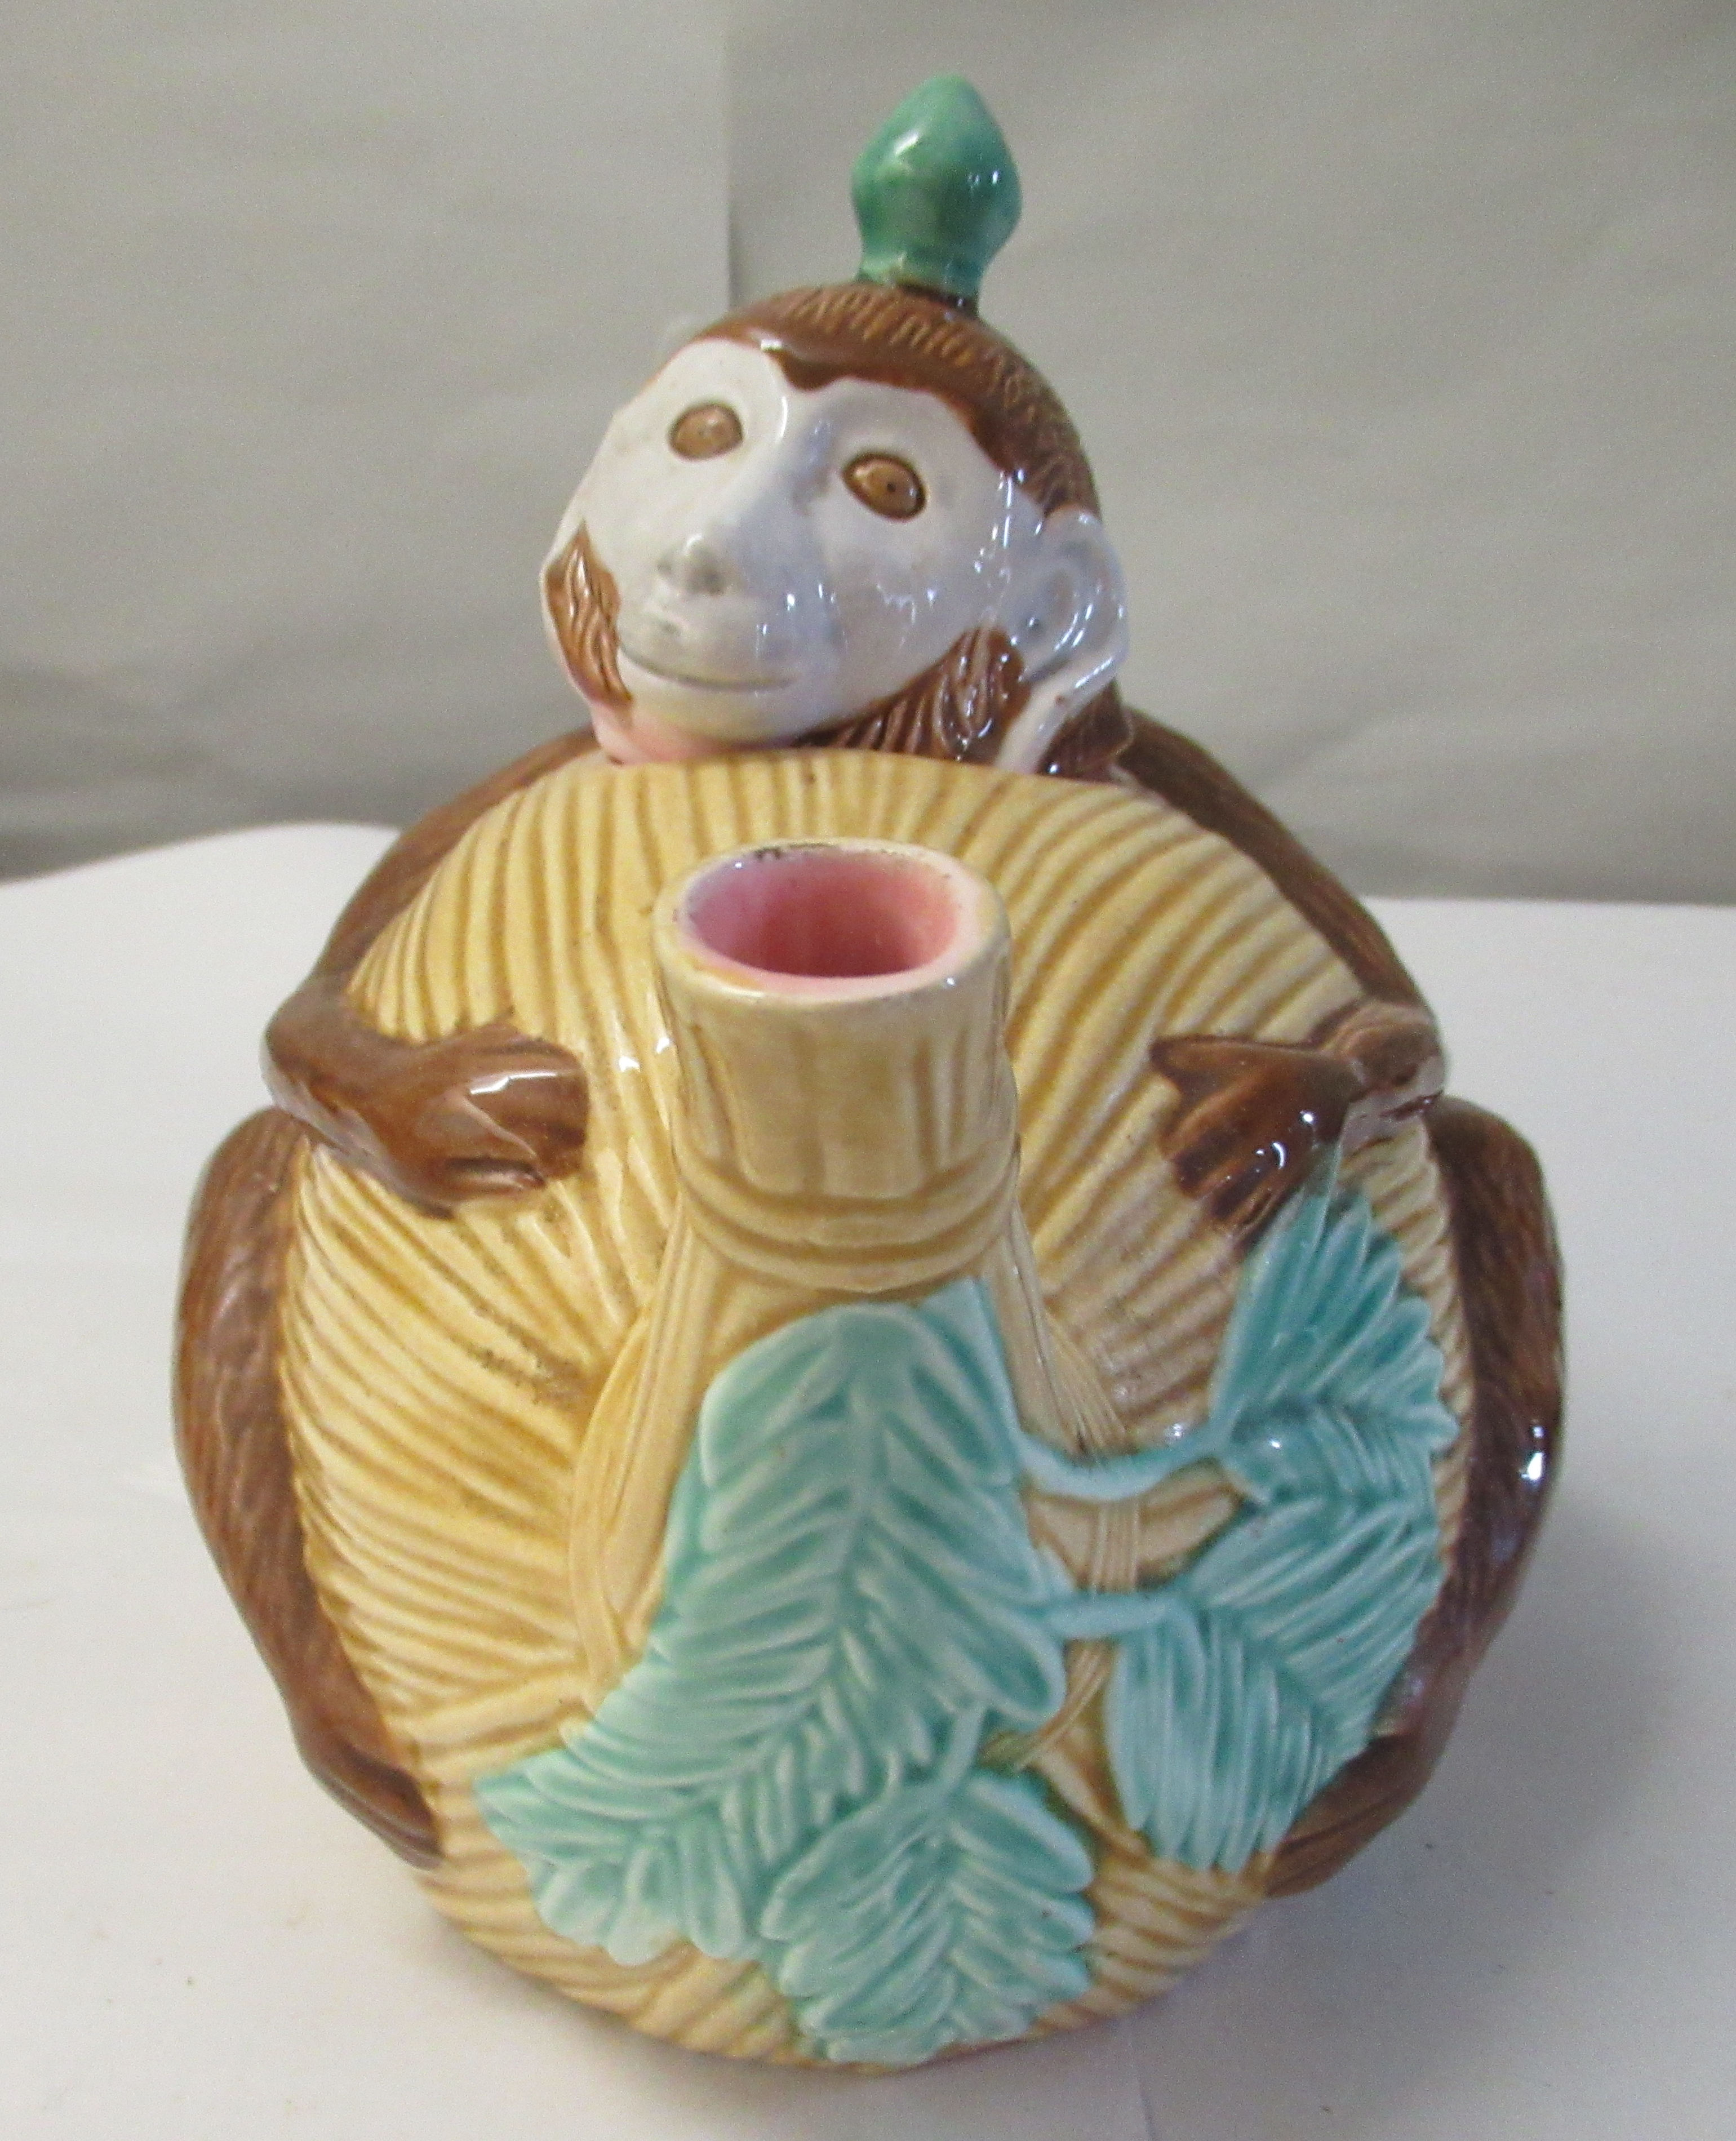 A 20thC reproduction of a Minton majolica teapot, fashioned as a monkey